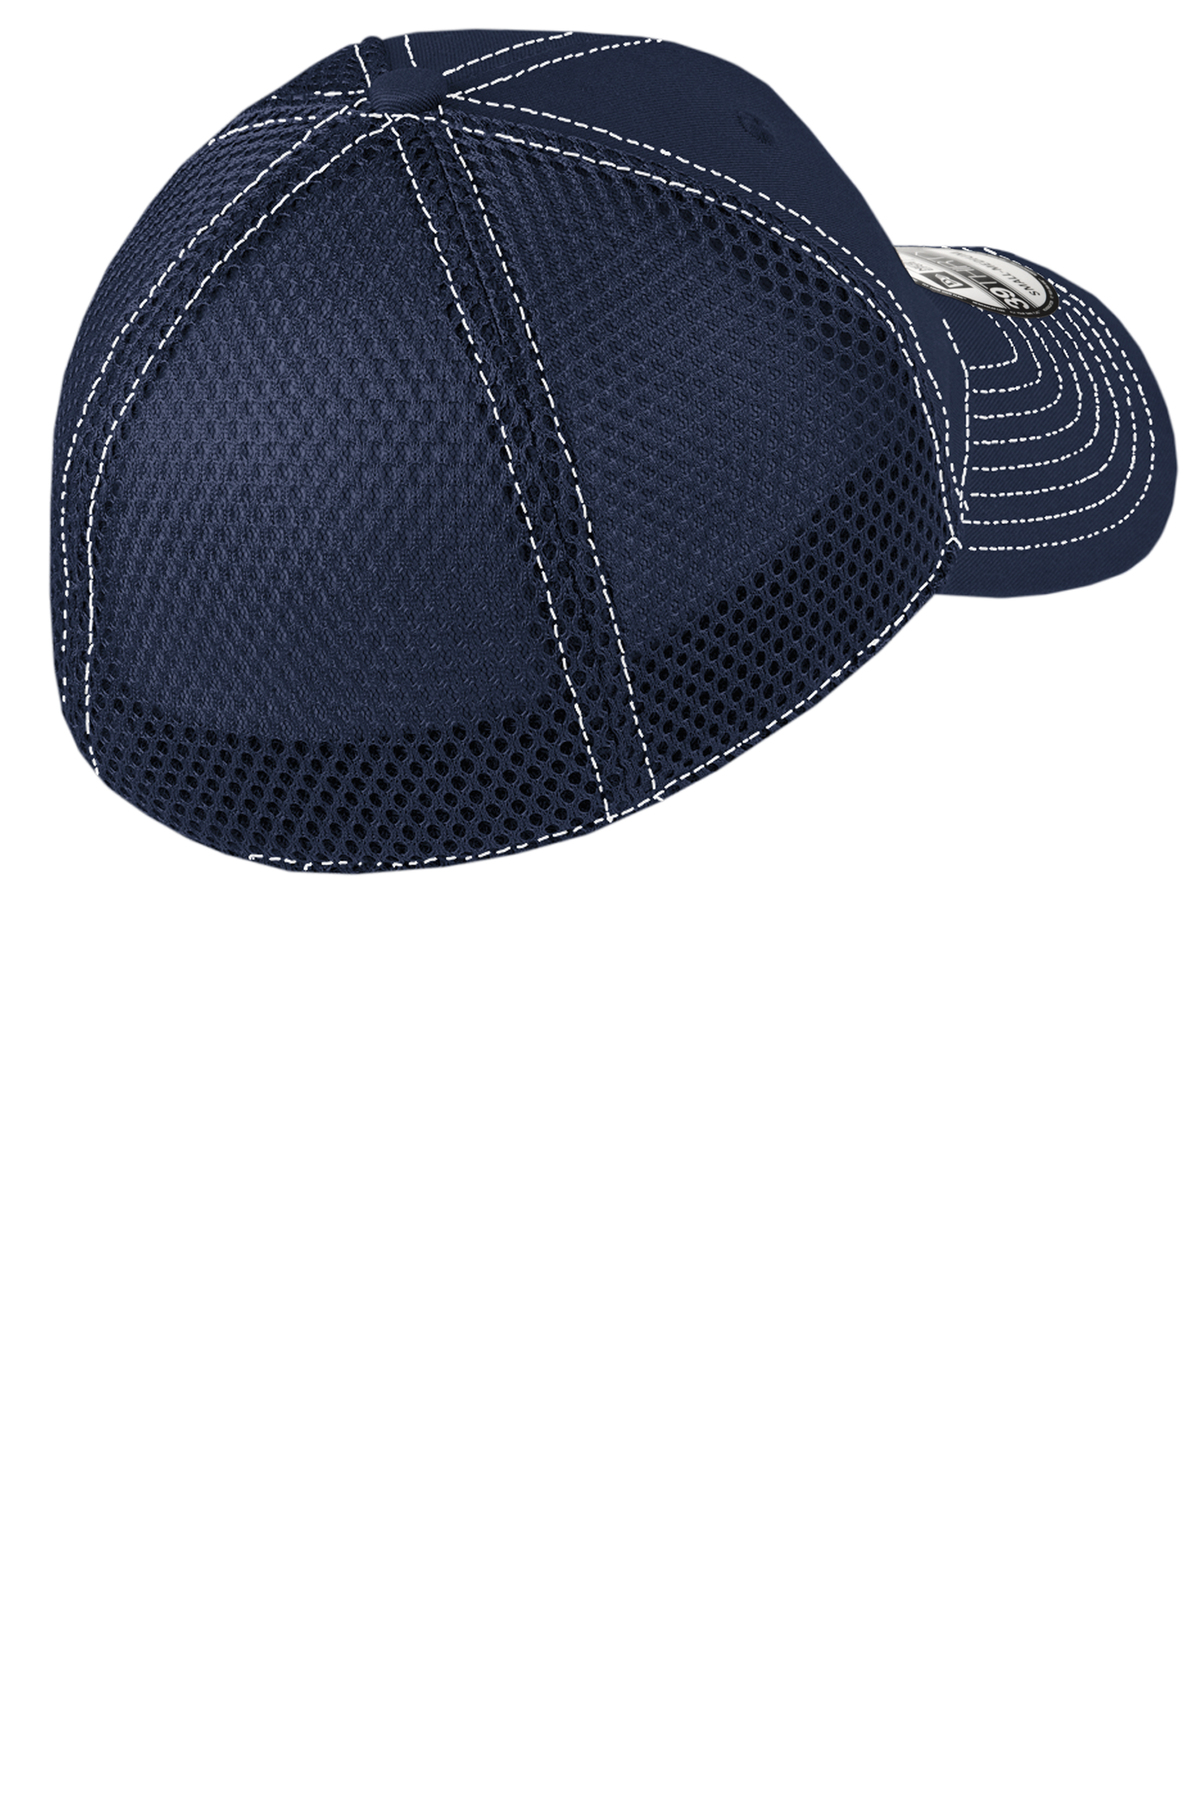 01f23d84a64 ... Mesh Contrast Stitch Cap. A maximum of 8 logos have been uploaded.  Please remove a logo from My Logos to continue